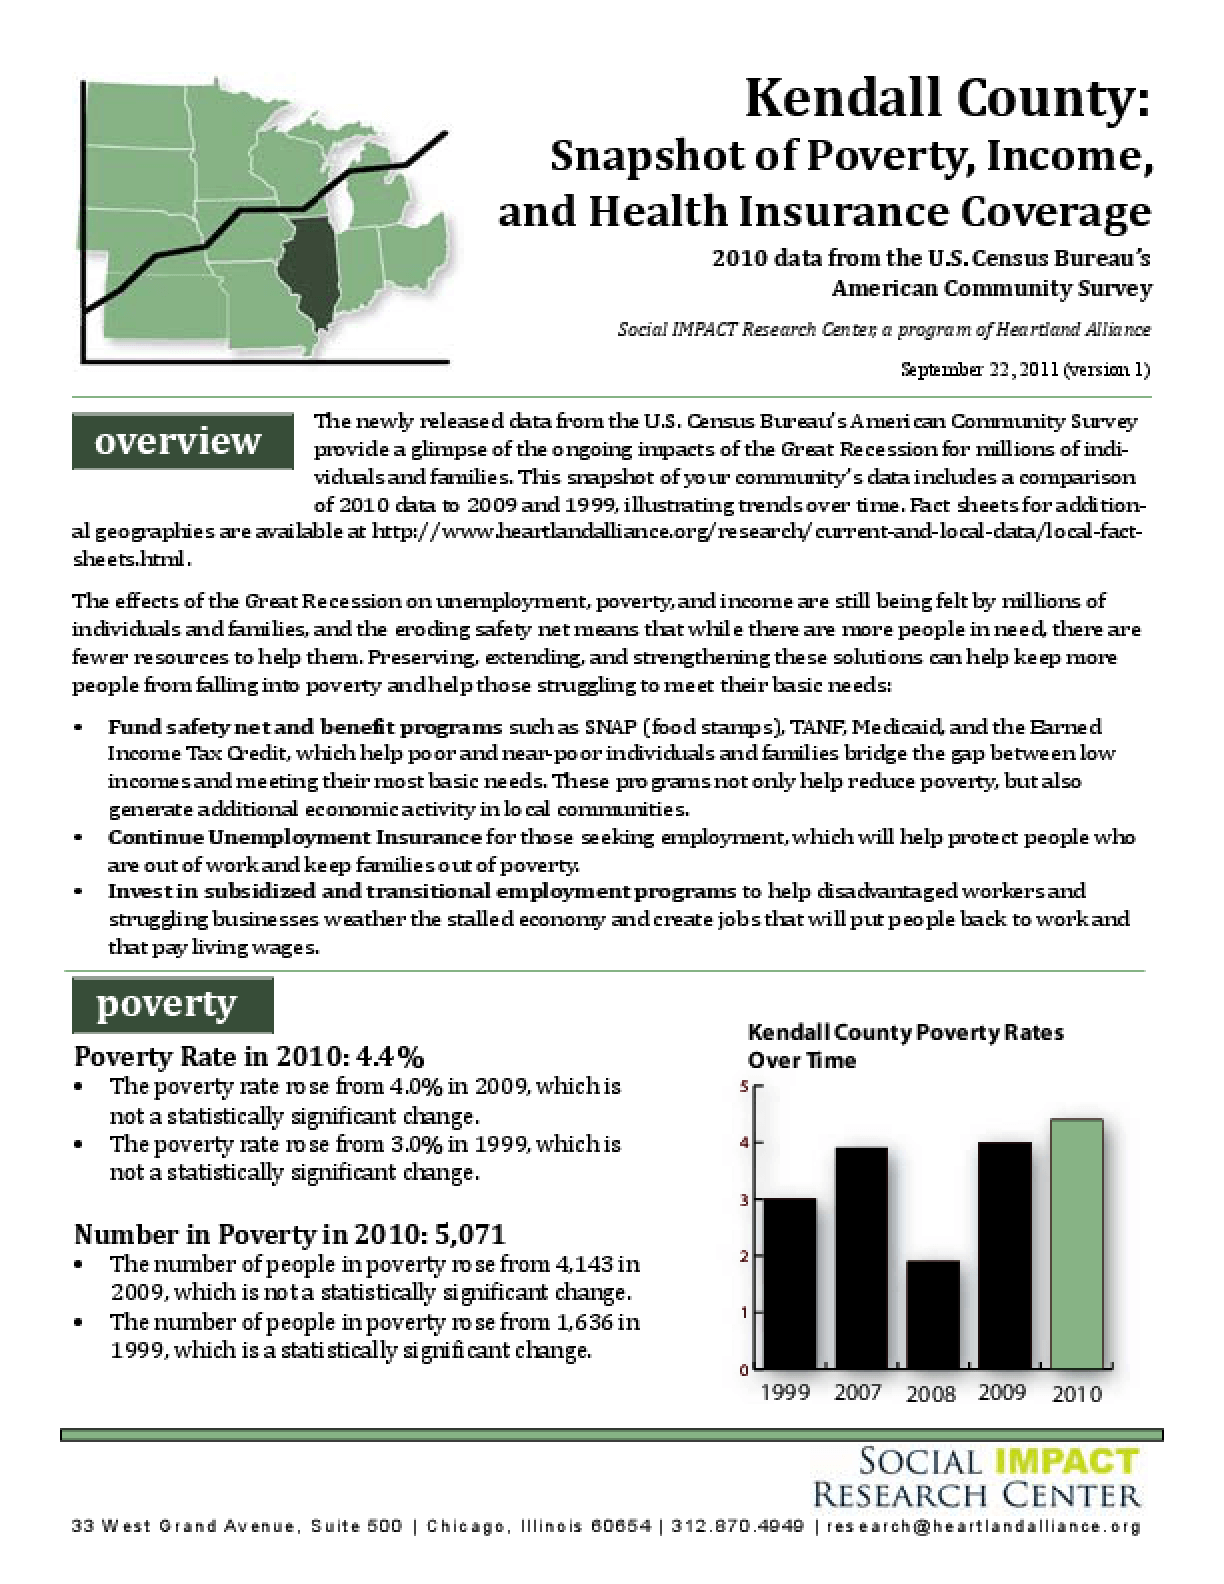 Kendall County: Snapshot of Poverty, Income, and Health Insurance Coverage